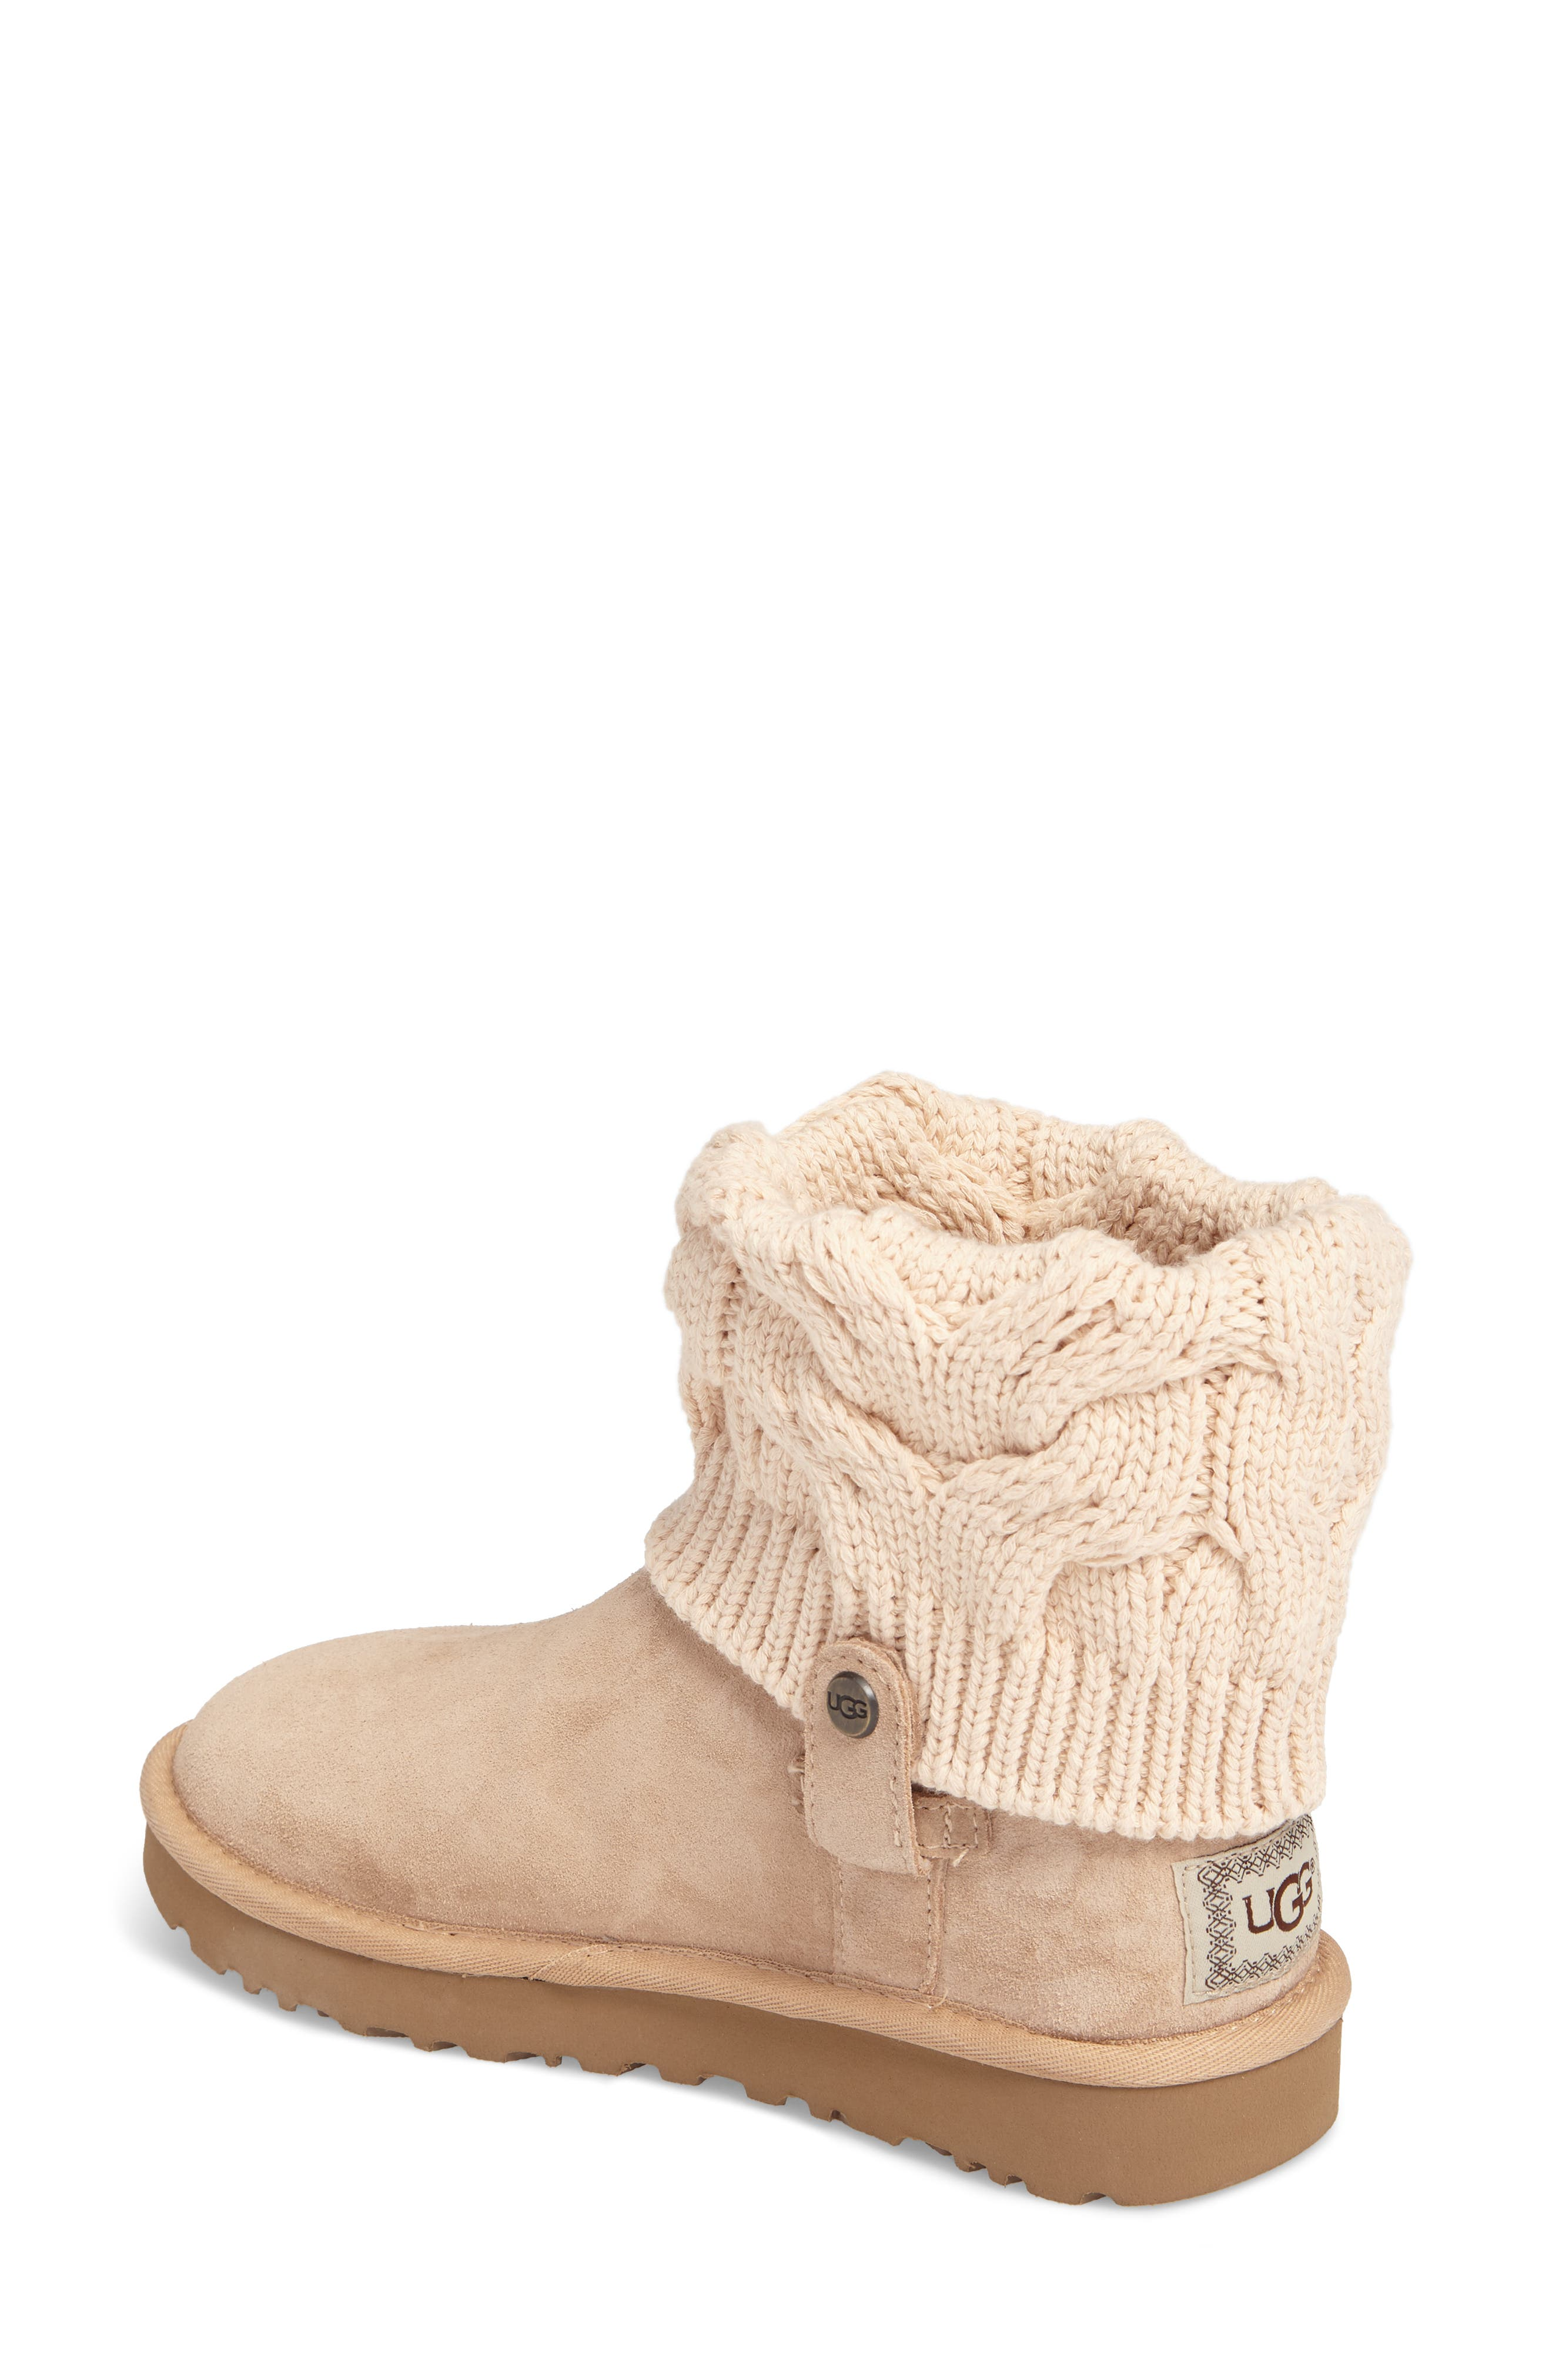 Alternate Image 2  - UGG® Saela Knit Cuff Boot (Women)